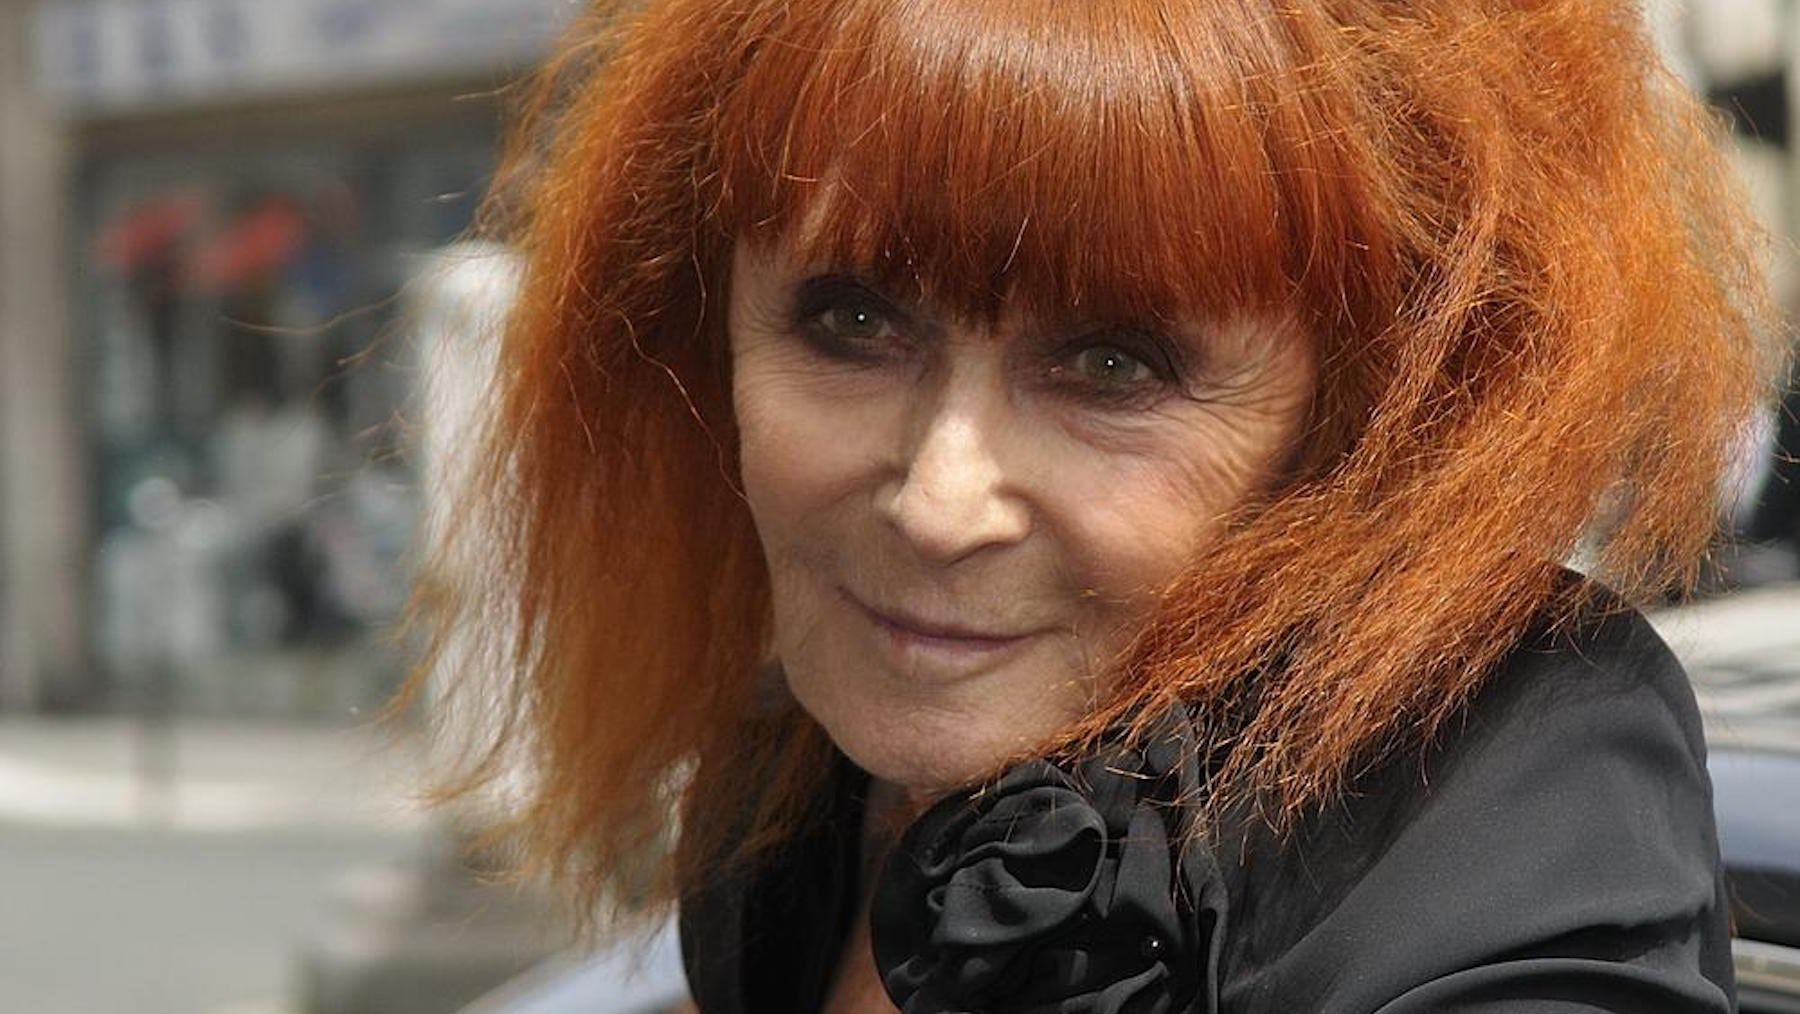 Sonia Rykiel | Source: Wikimedia Commons